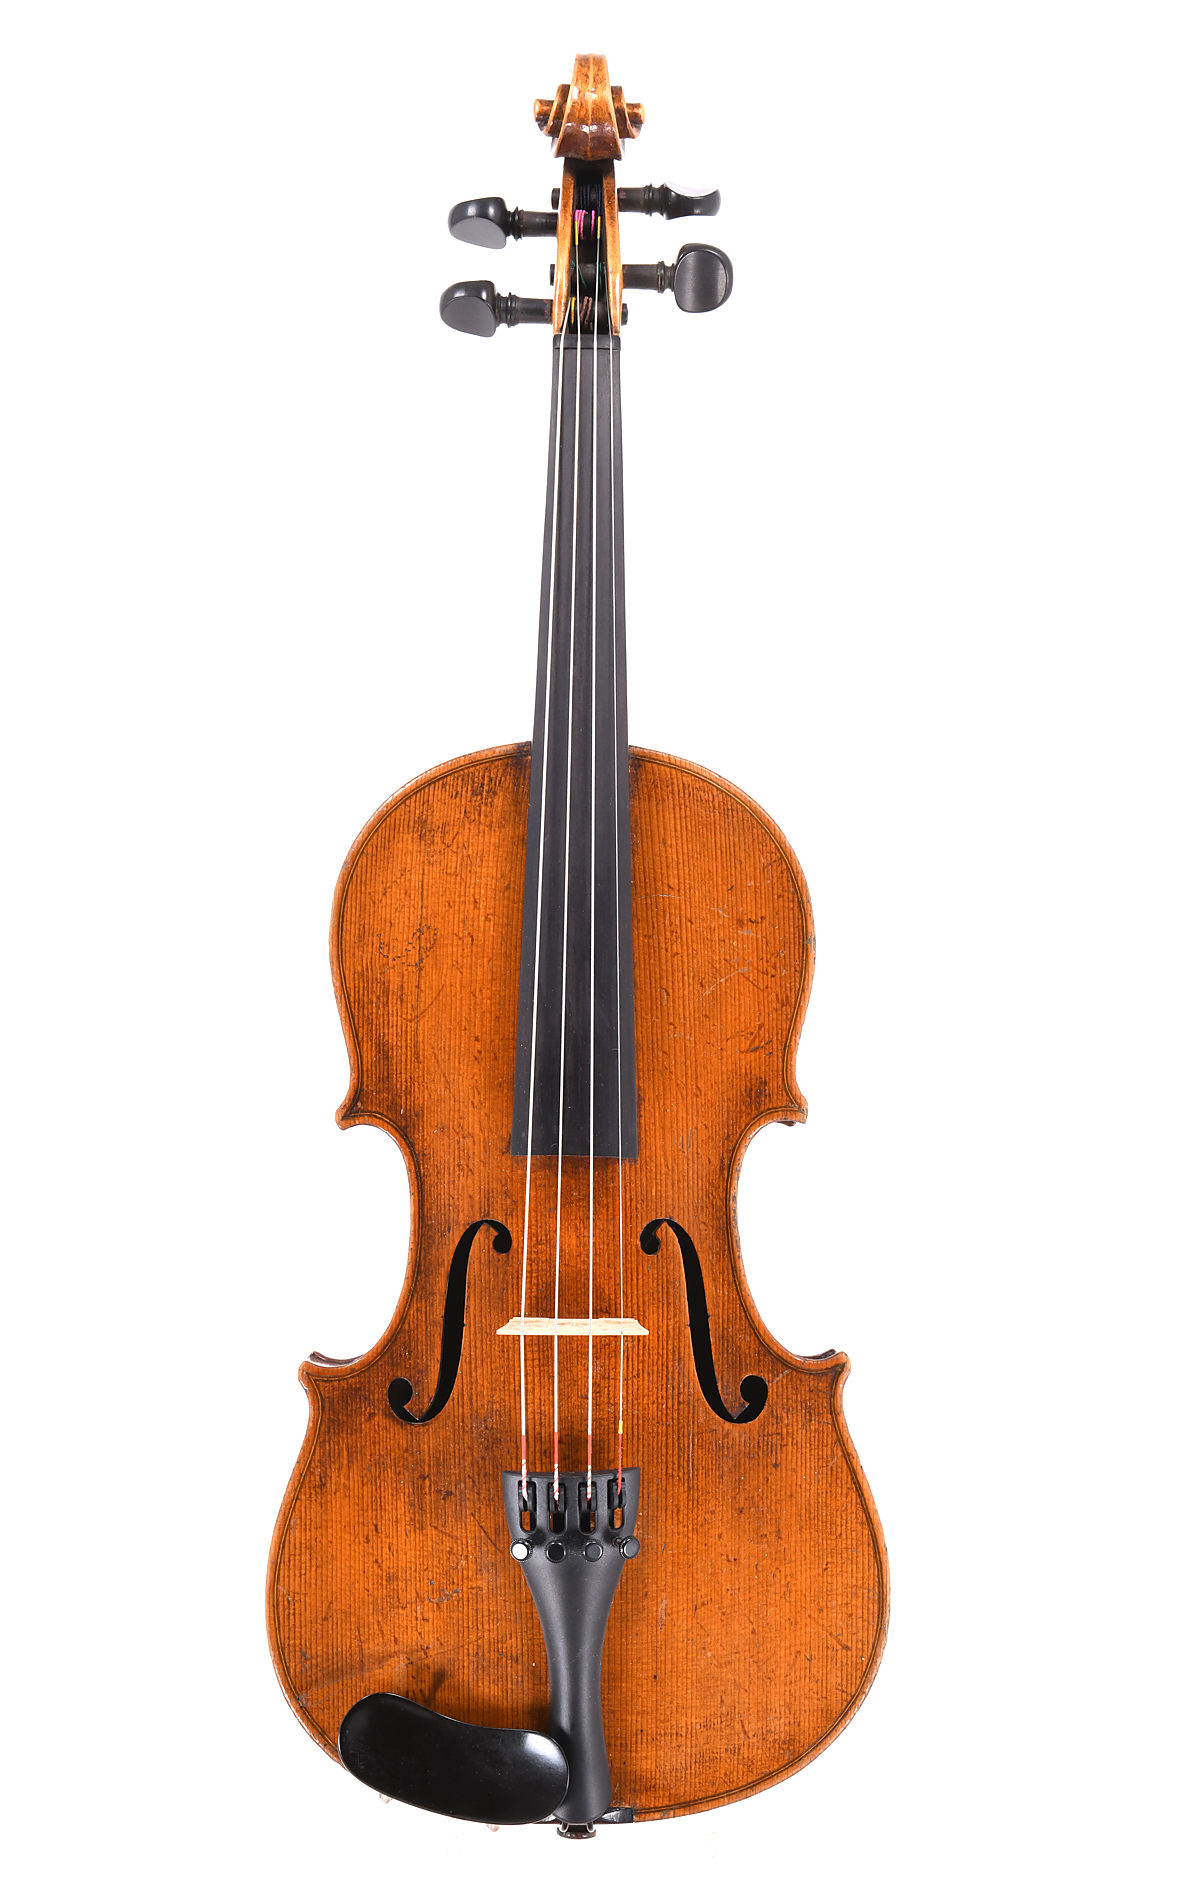 3/4 violin from Markneukirchen - top